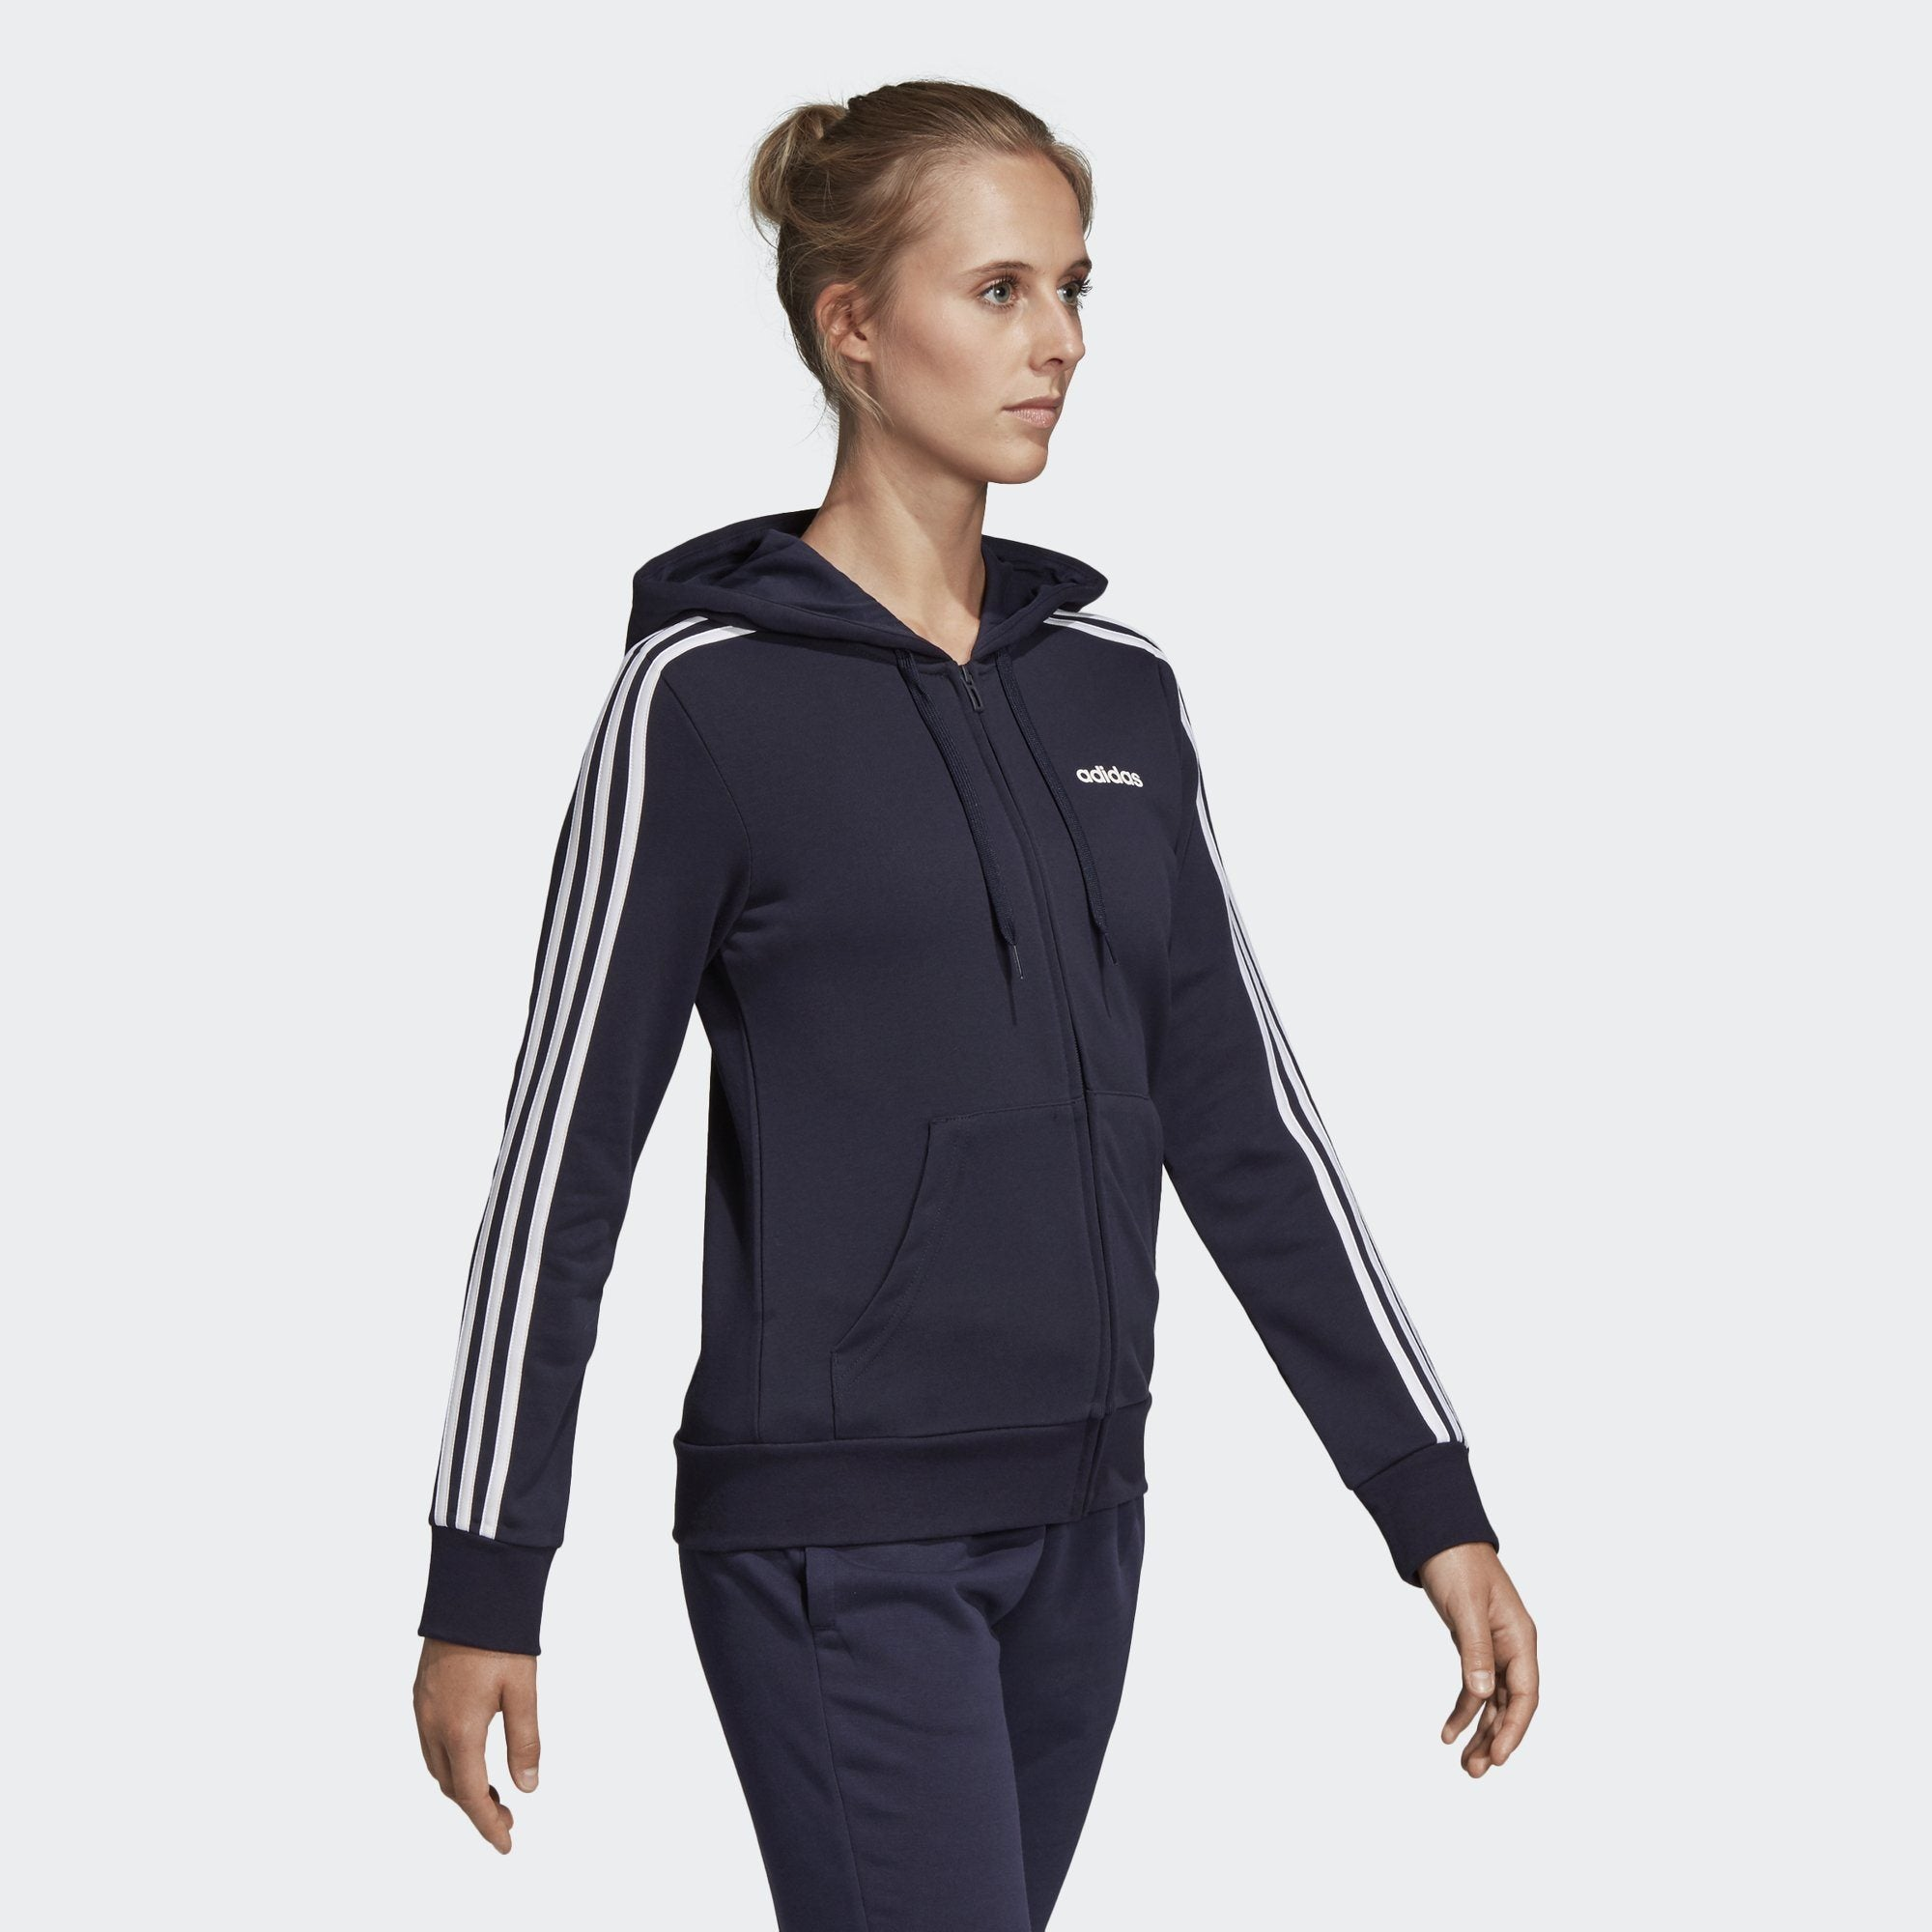 adidas Women's Essentials 3 Stripes Hoodie